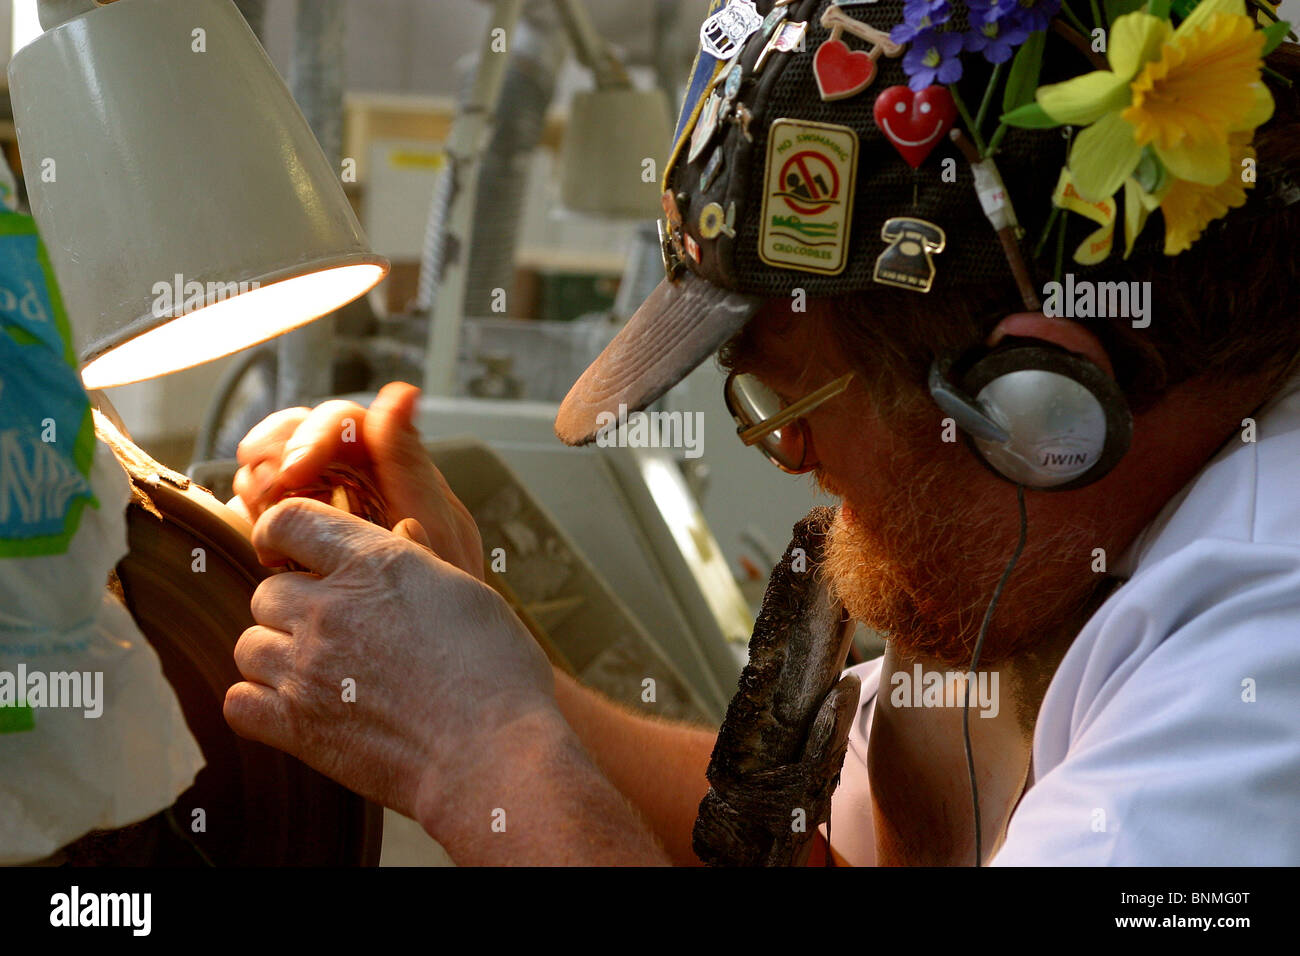 Ireland, Waterford, Waterford Crystal Factory Visitor's Centre, man cutting decoration - Stock Image